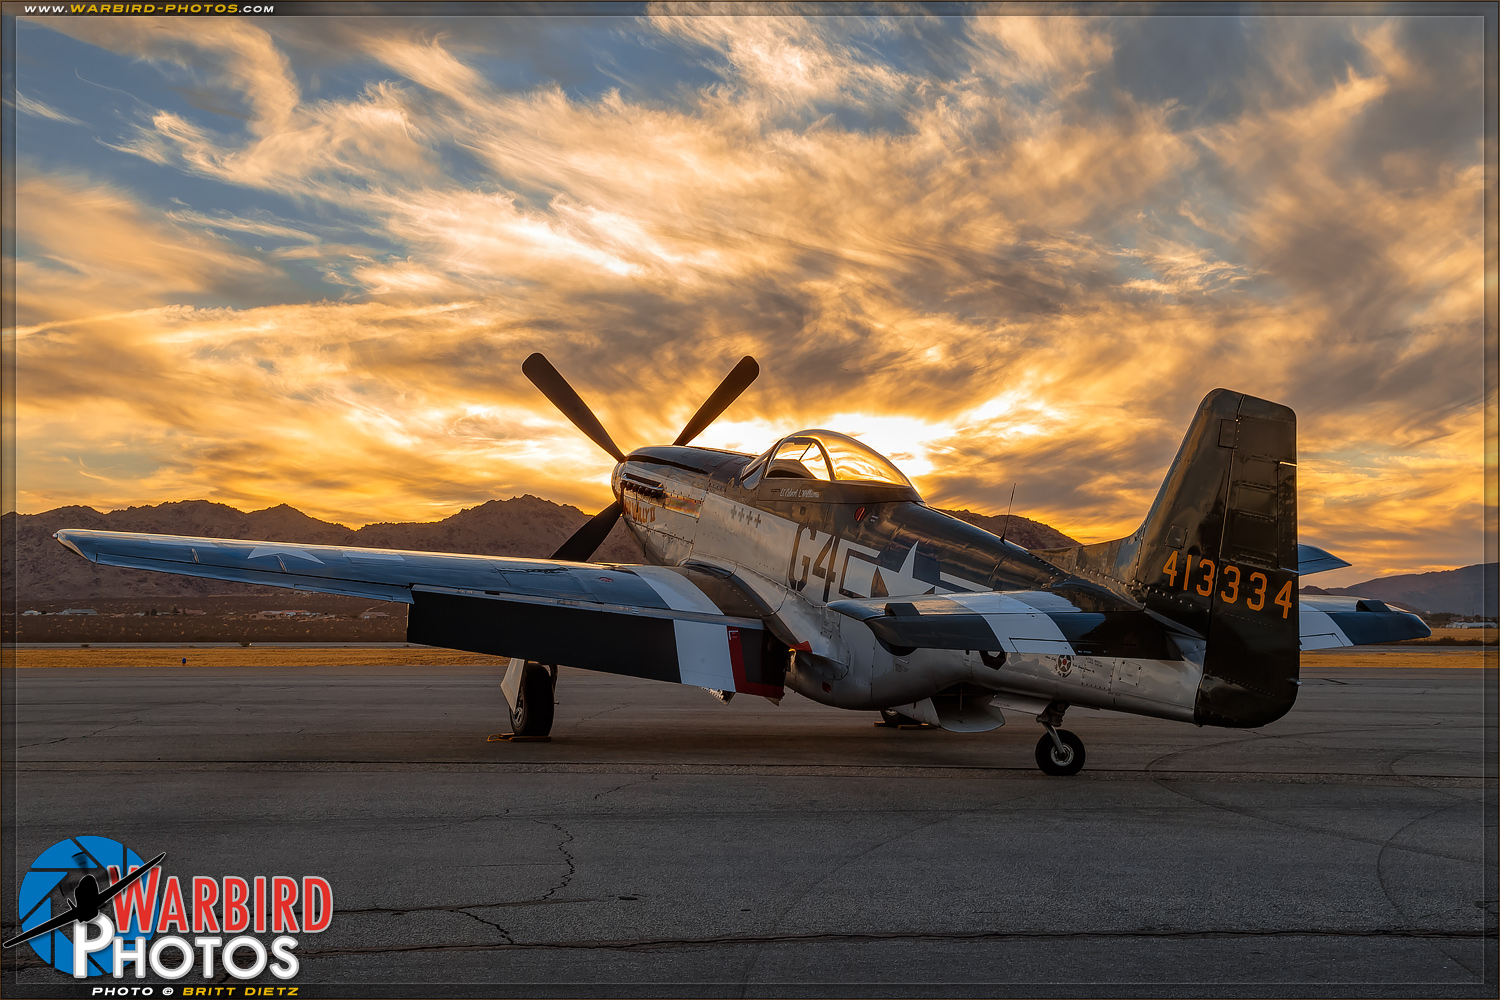 North American P-51D Mustang    - Apple Valley Airshow 2016 Photo Gallery